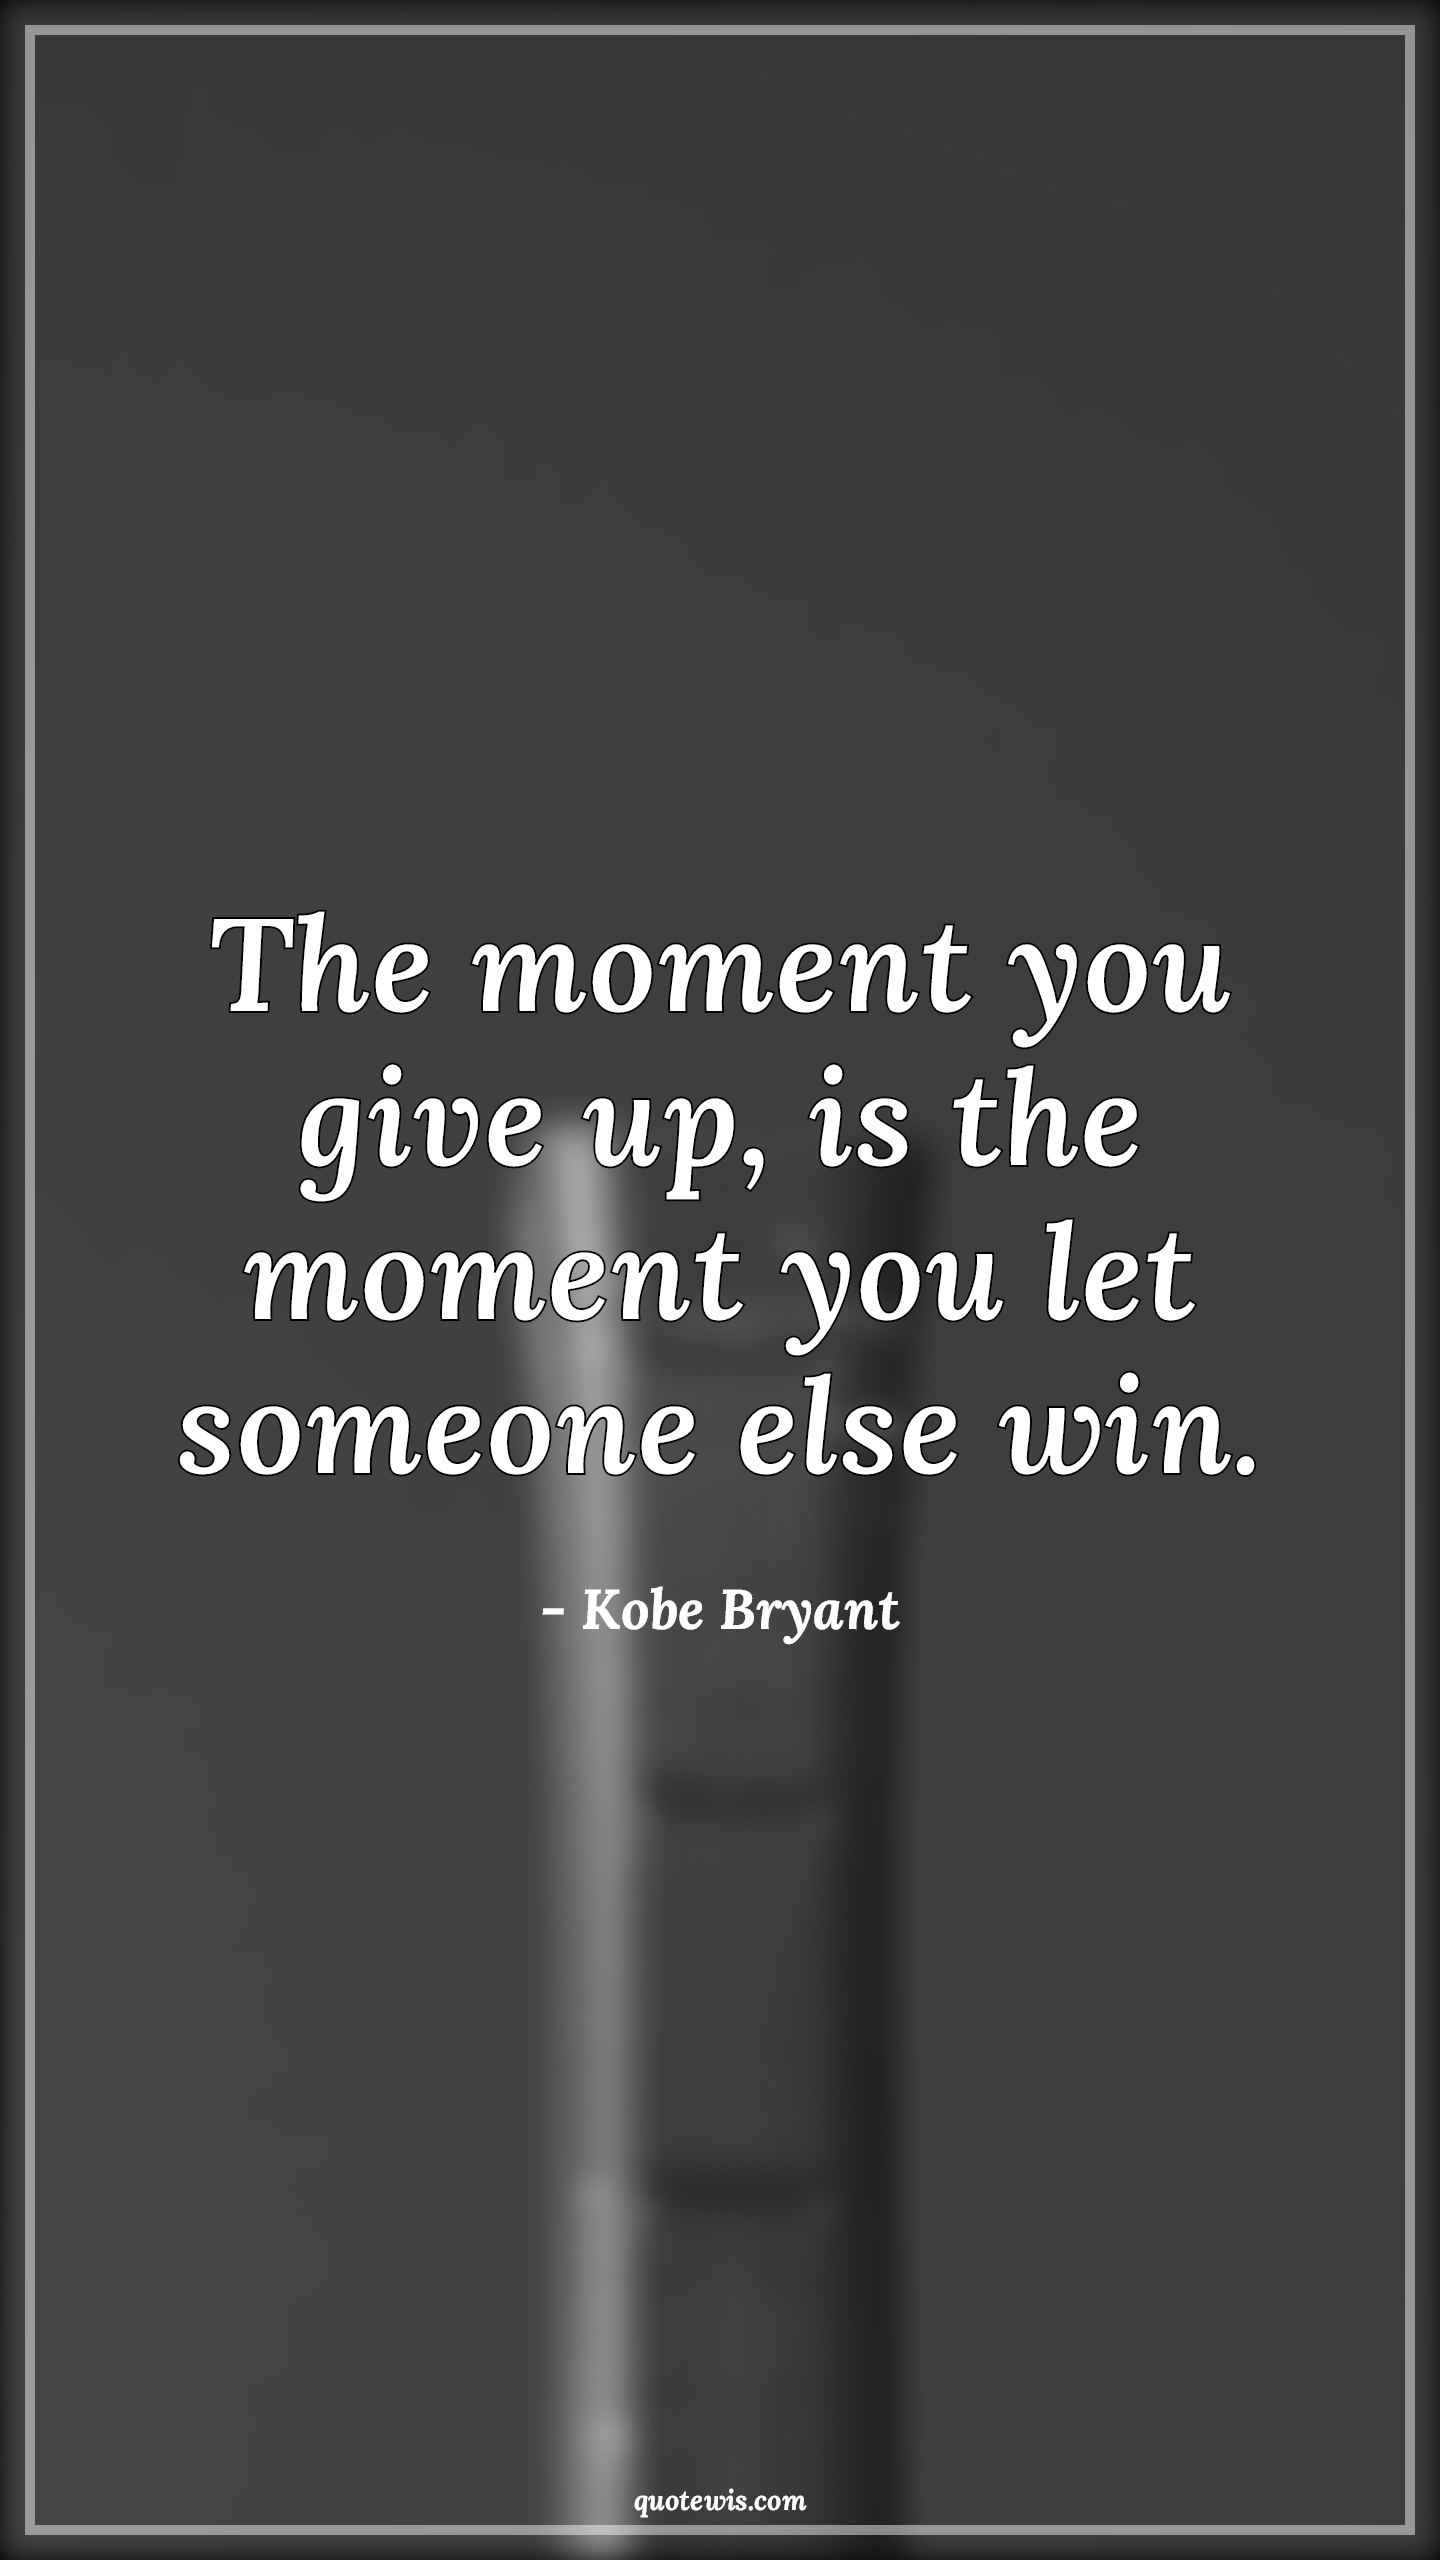 The moment you give up, is the moment you let someone else win.